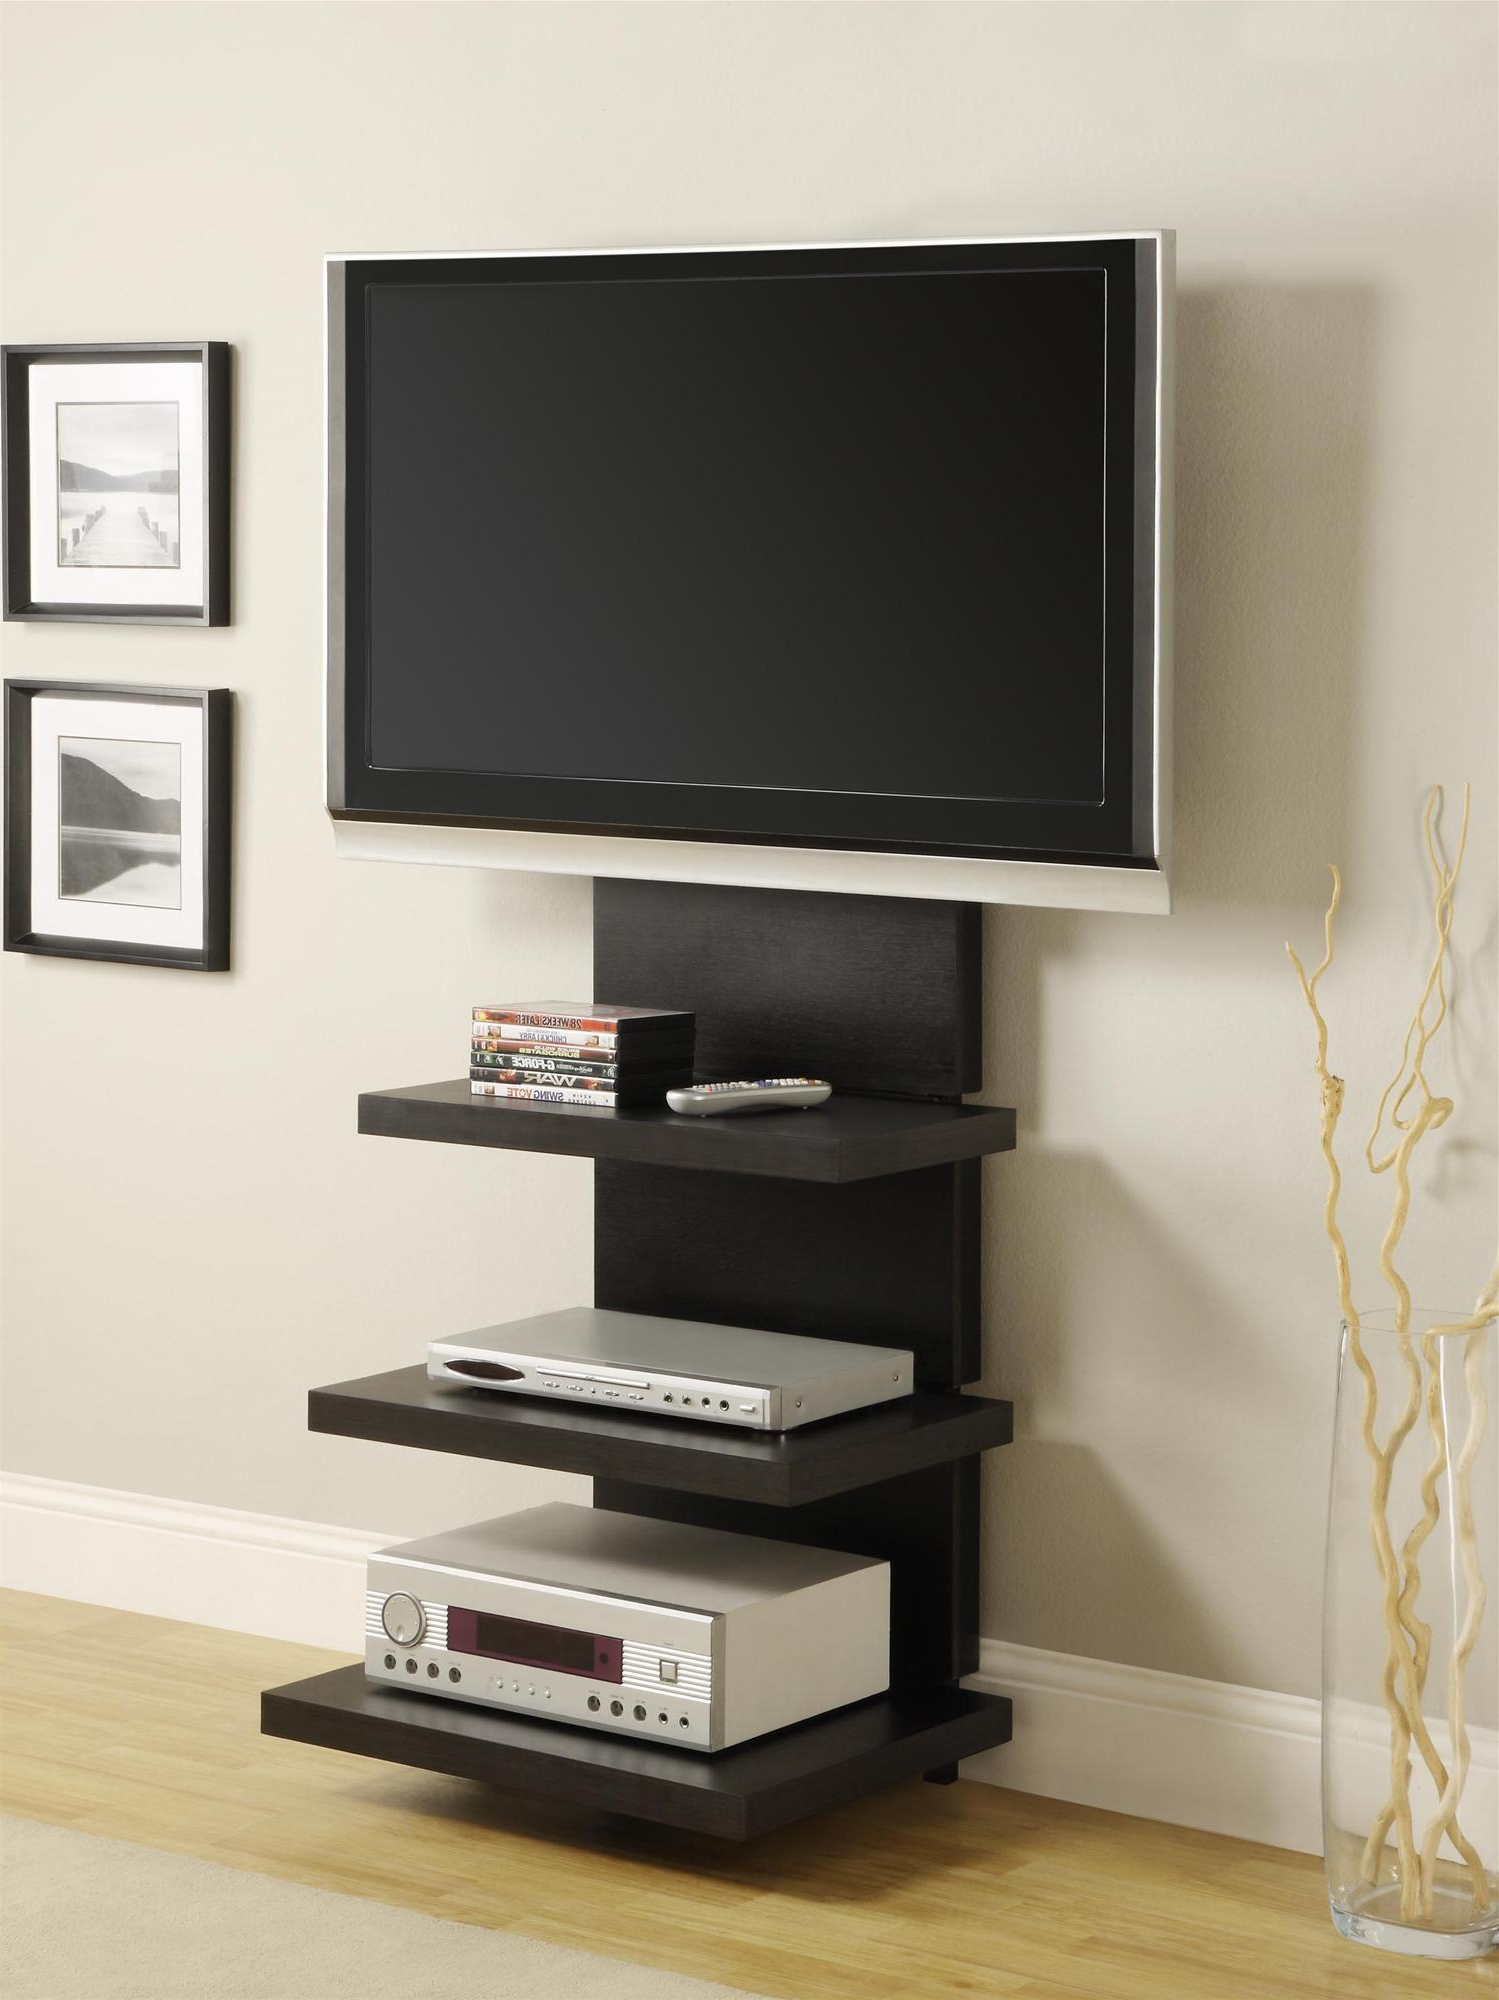 Wall Mount Tv Stand With 3 Shelves, Black, For Tvs Up To With Regard To Dillon Black Tv Unit Stands (View 1 of 20)